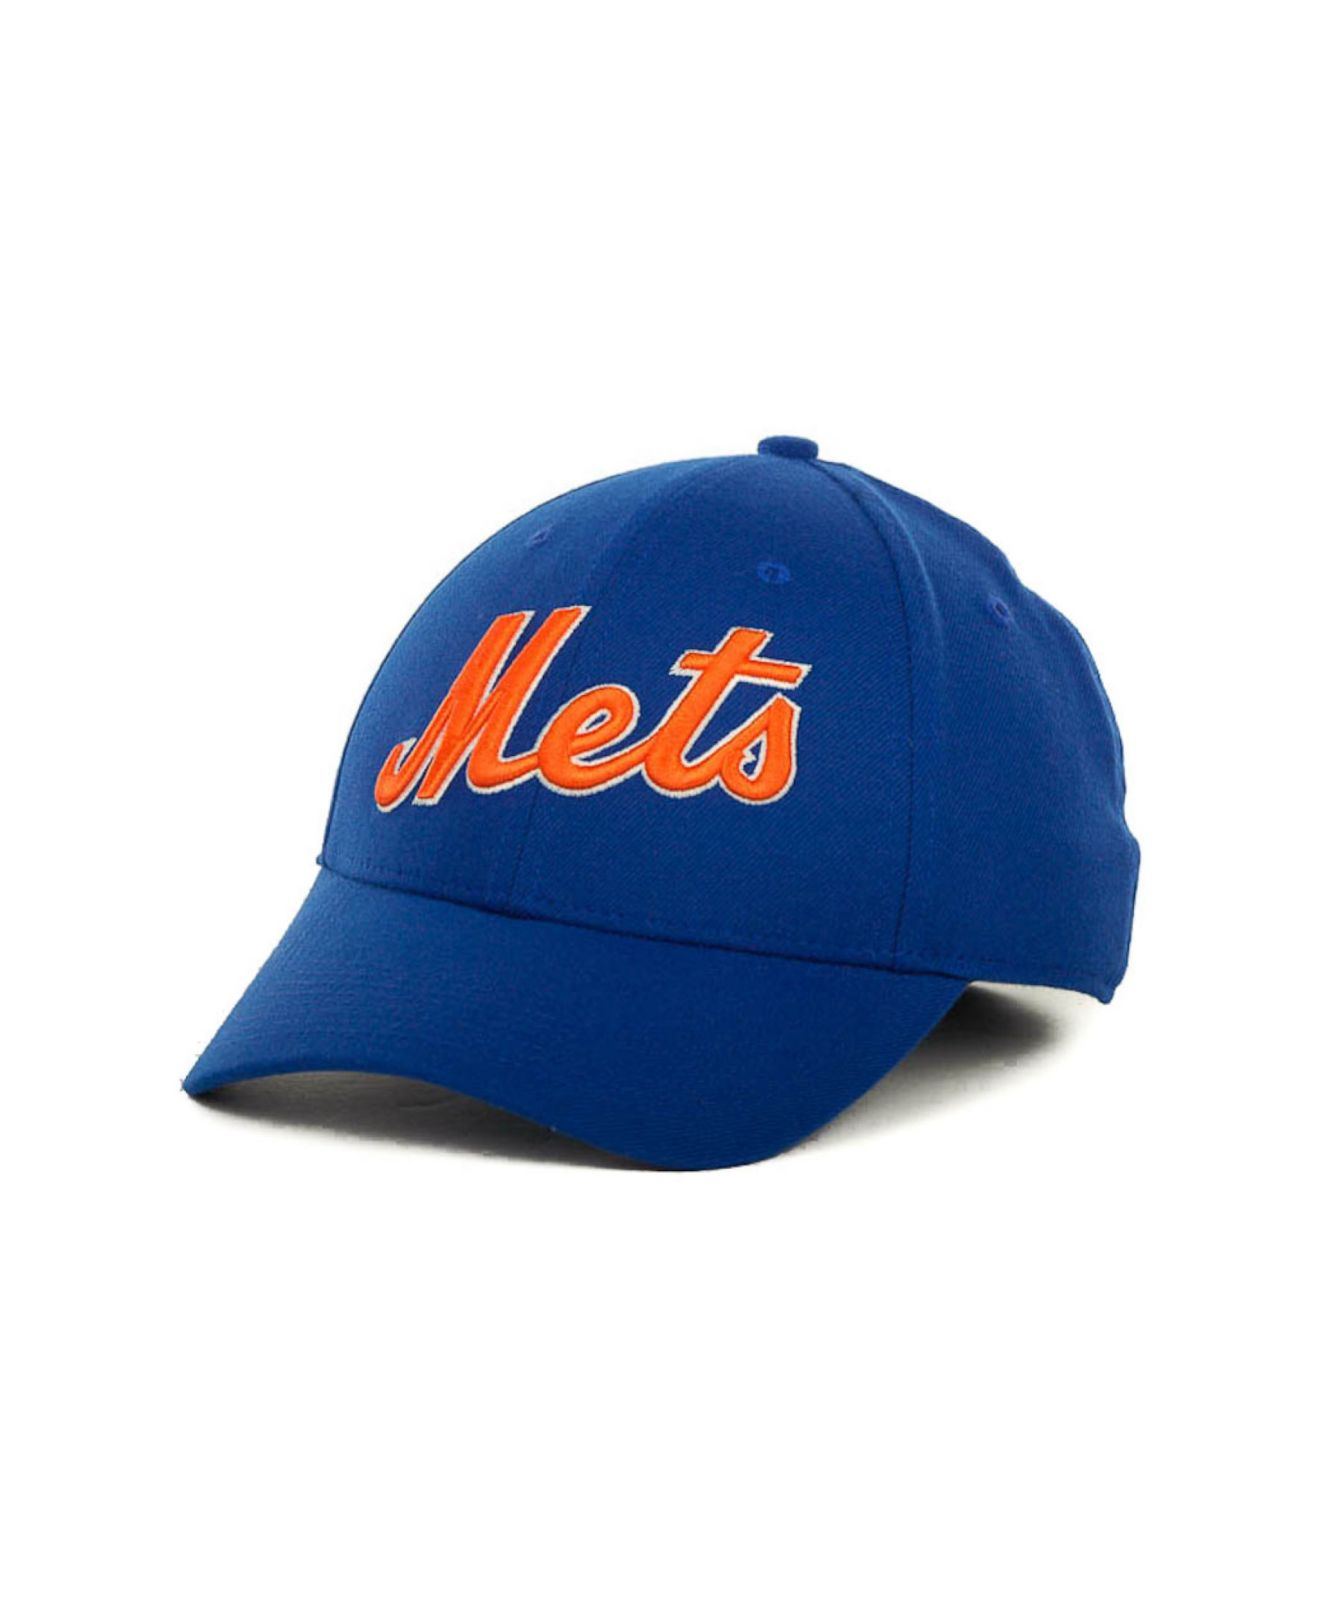 Lyst - Nike New York Mets Dri-fit Swoosh Flex Cap in Blue for Men e5c05c0b6669